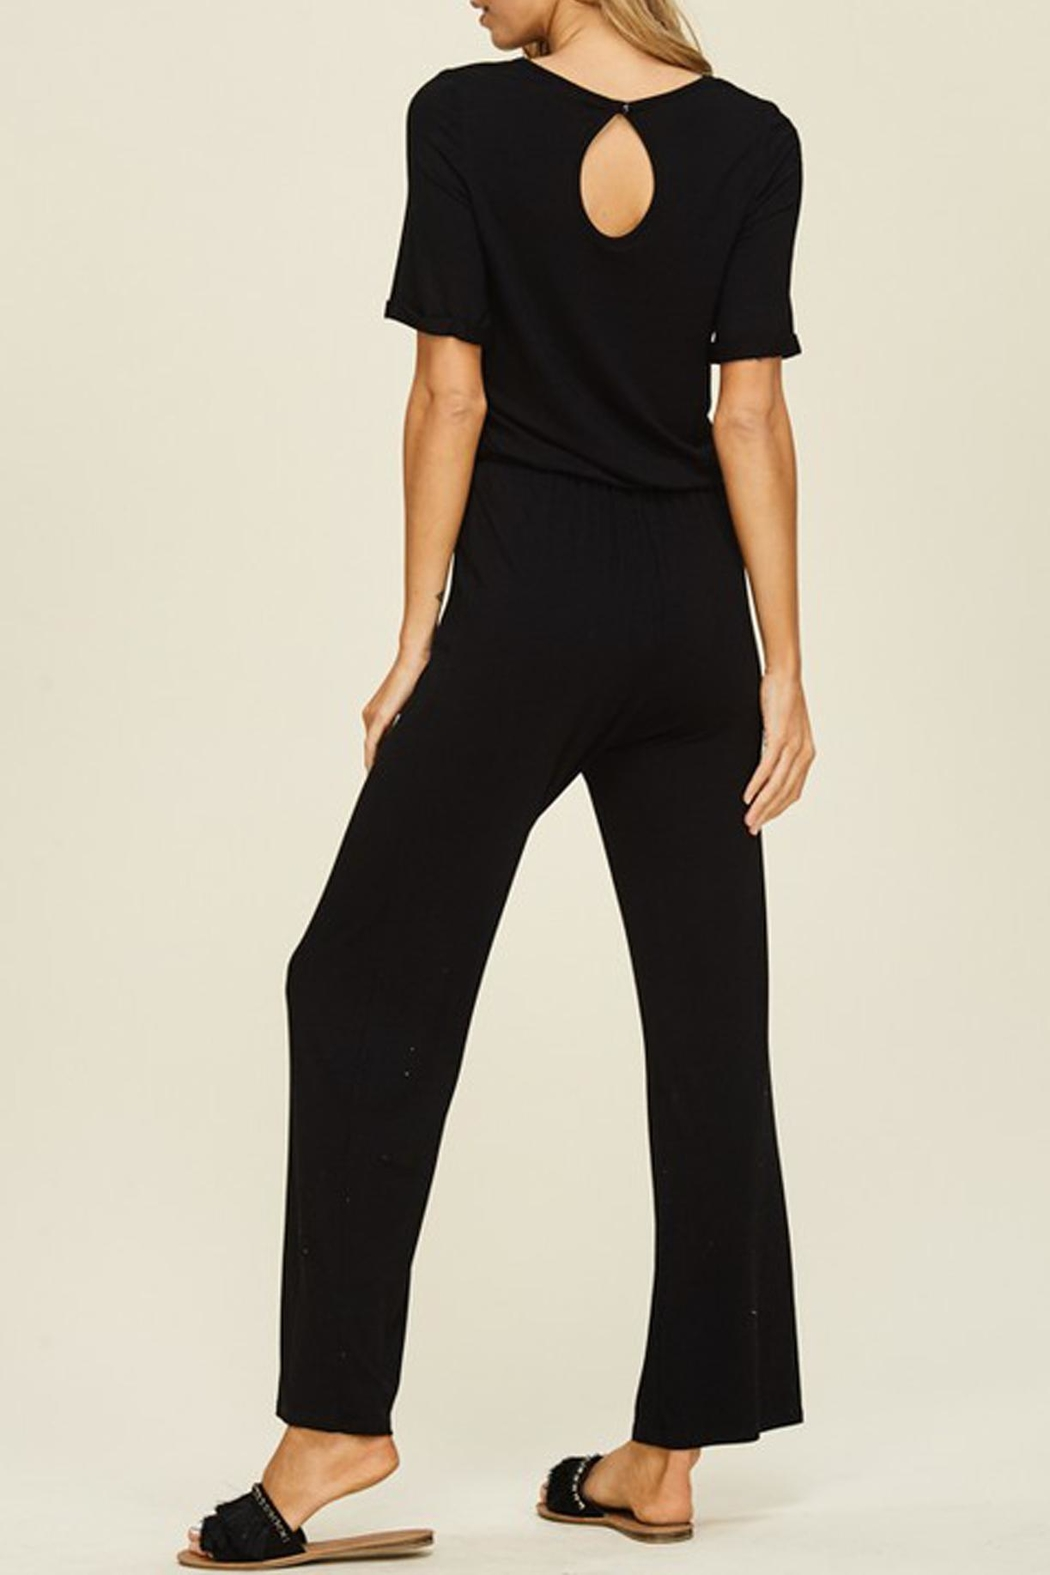 annabelle Black Knit Jumpsuit - Front Full Image